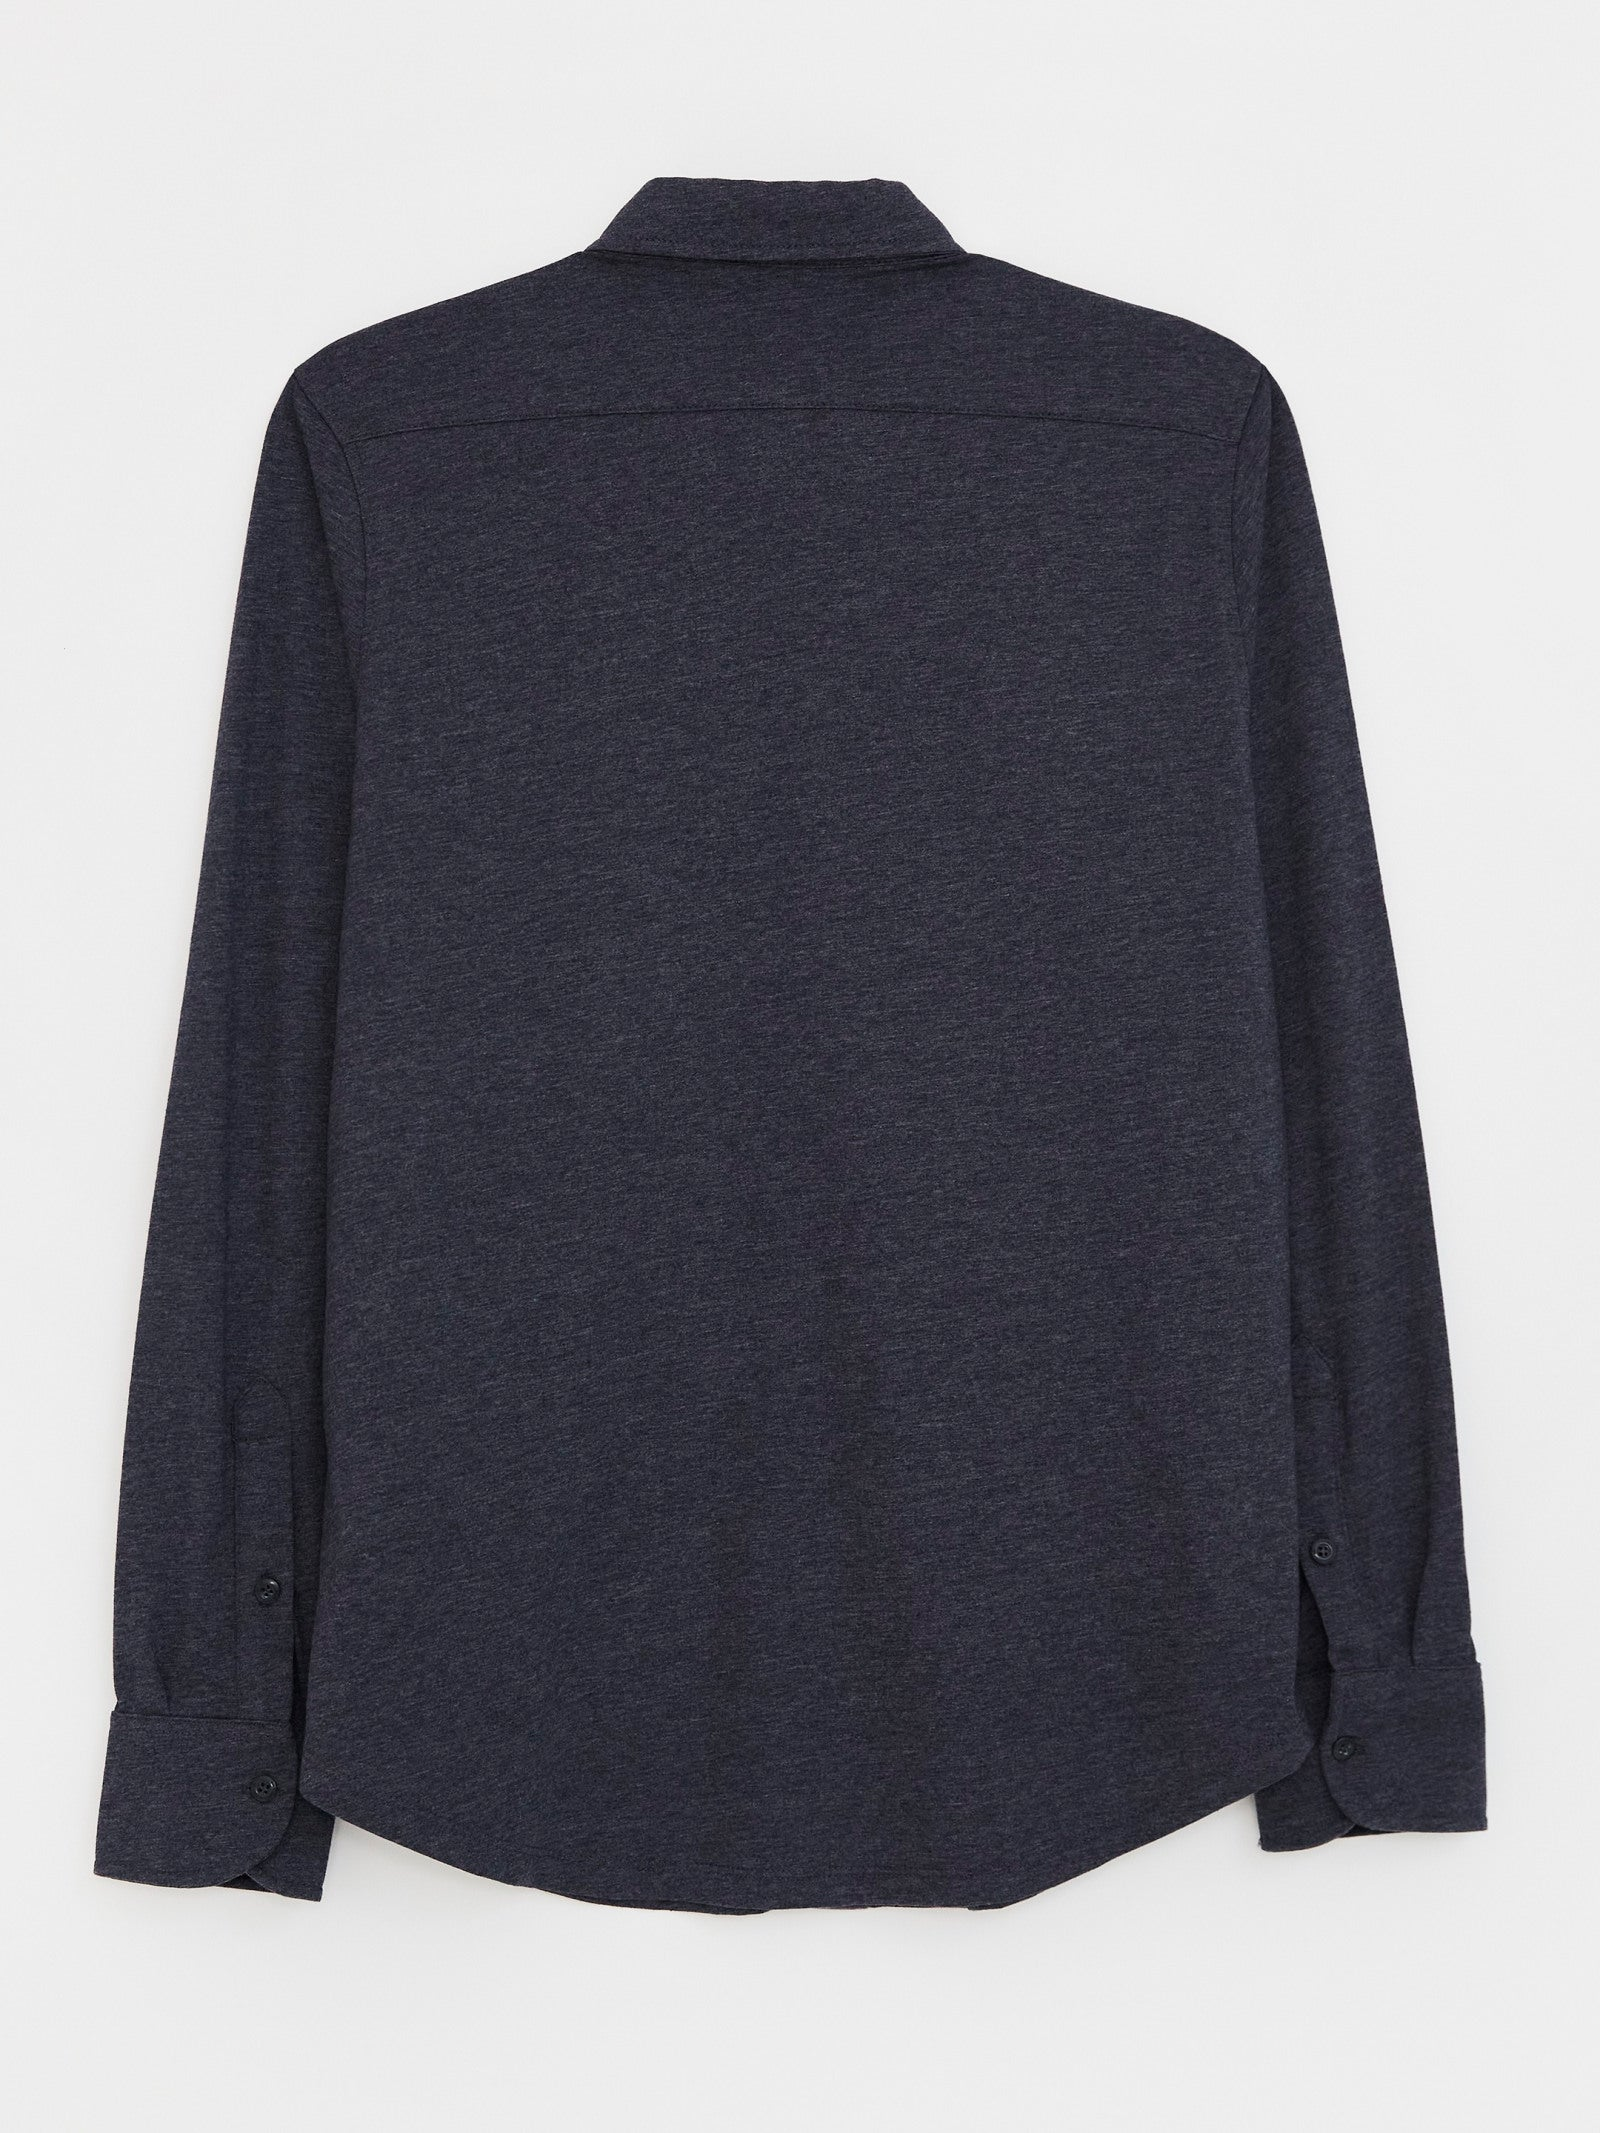 Montford Jersey Shirt in Dark Blue